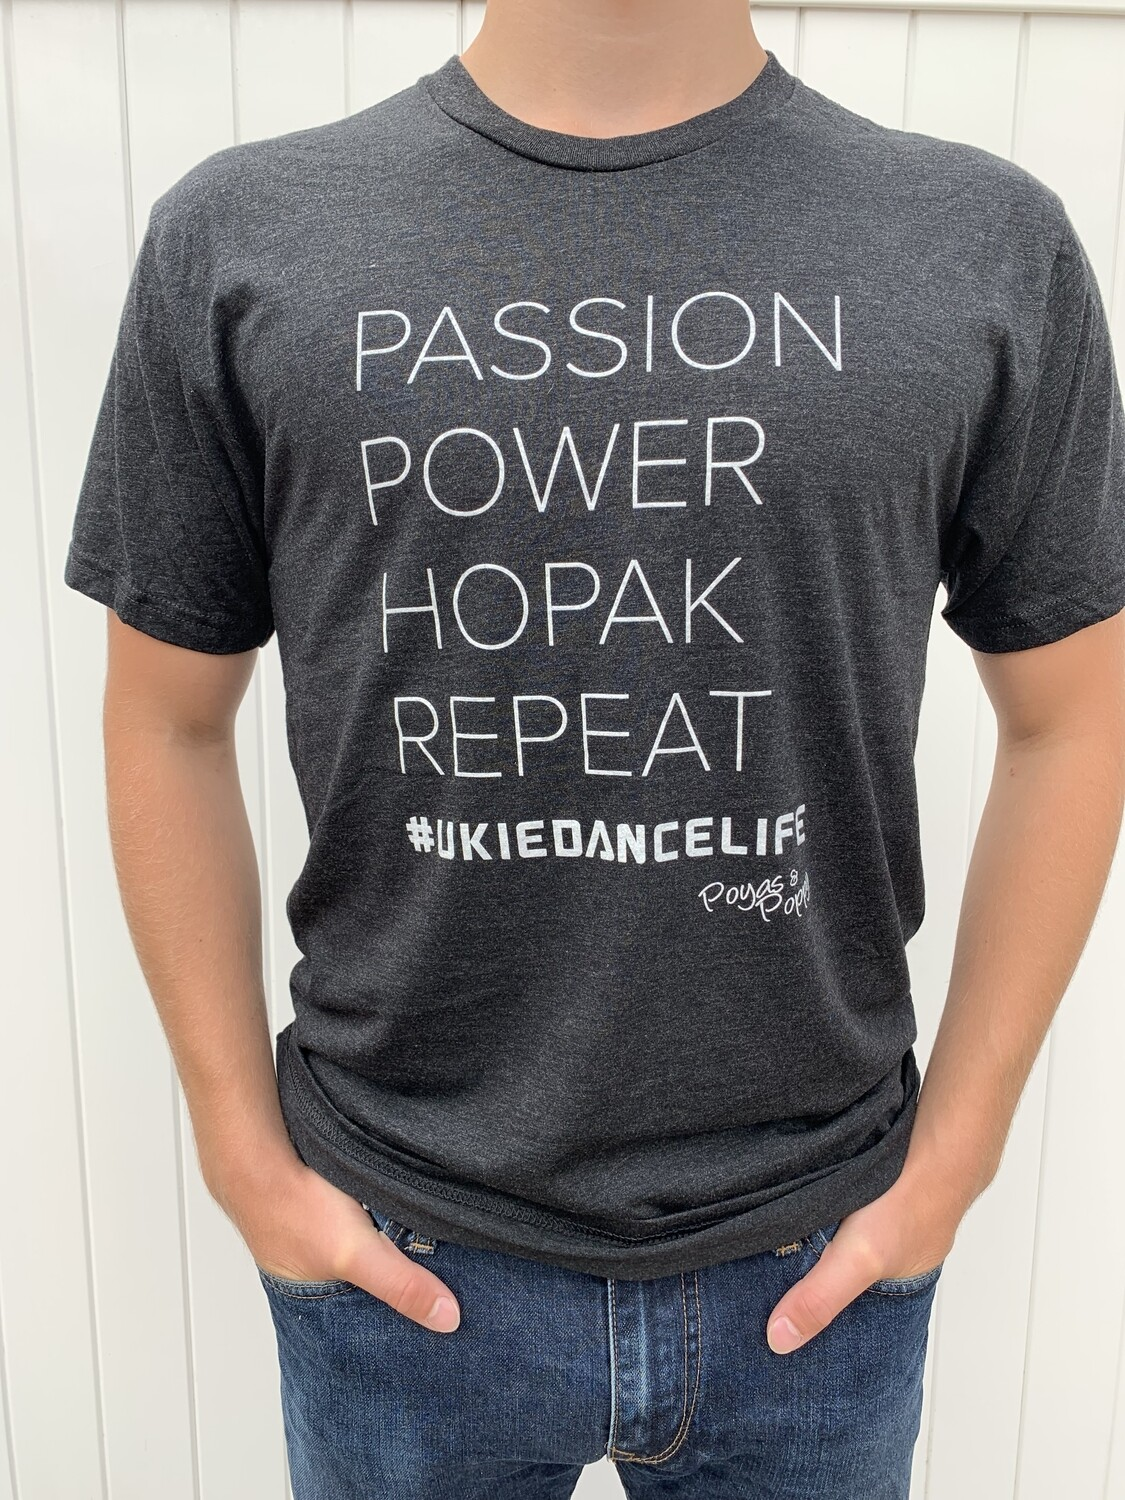 Passion Power Hopak Repeat Tee - Unisex